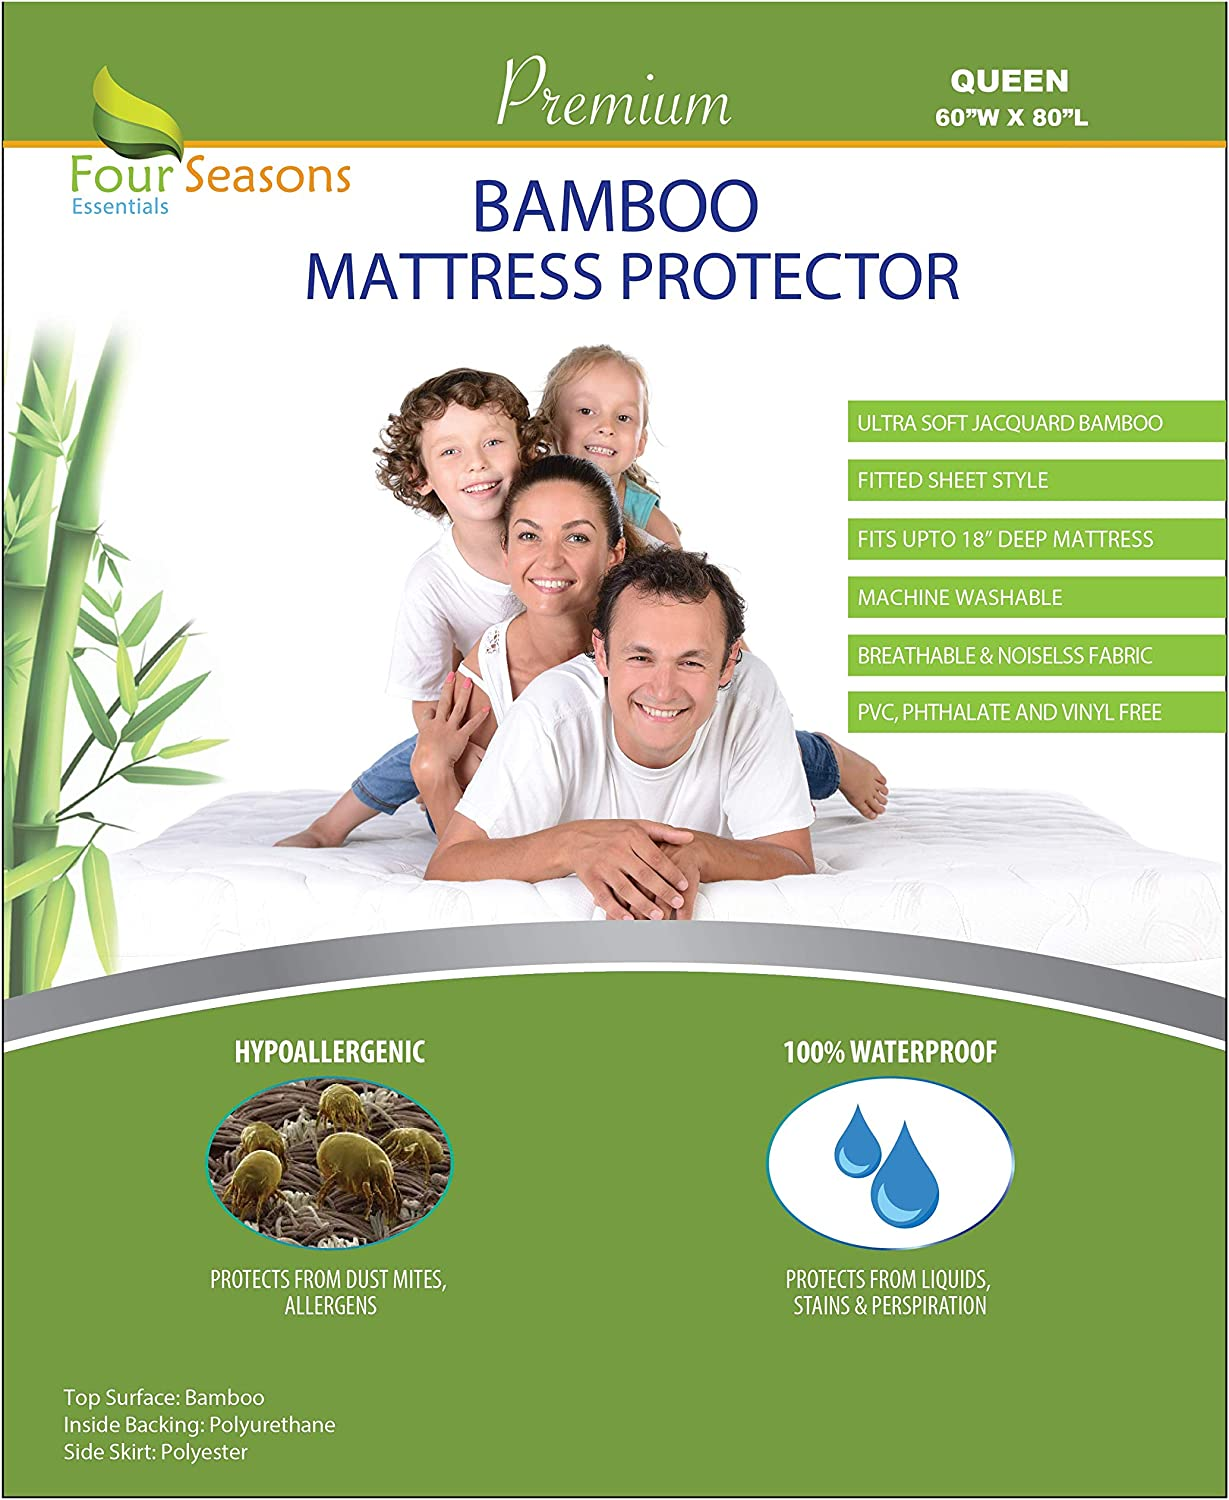 Four Seasons Essentials Queen Bamboo Mattress Protector - Waterproof Fitted Sheet Mattress Cover Hypoallergenic Premium Quality Soft Pad Protects from Dust Mites Allergens